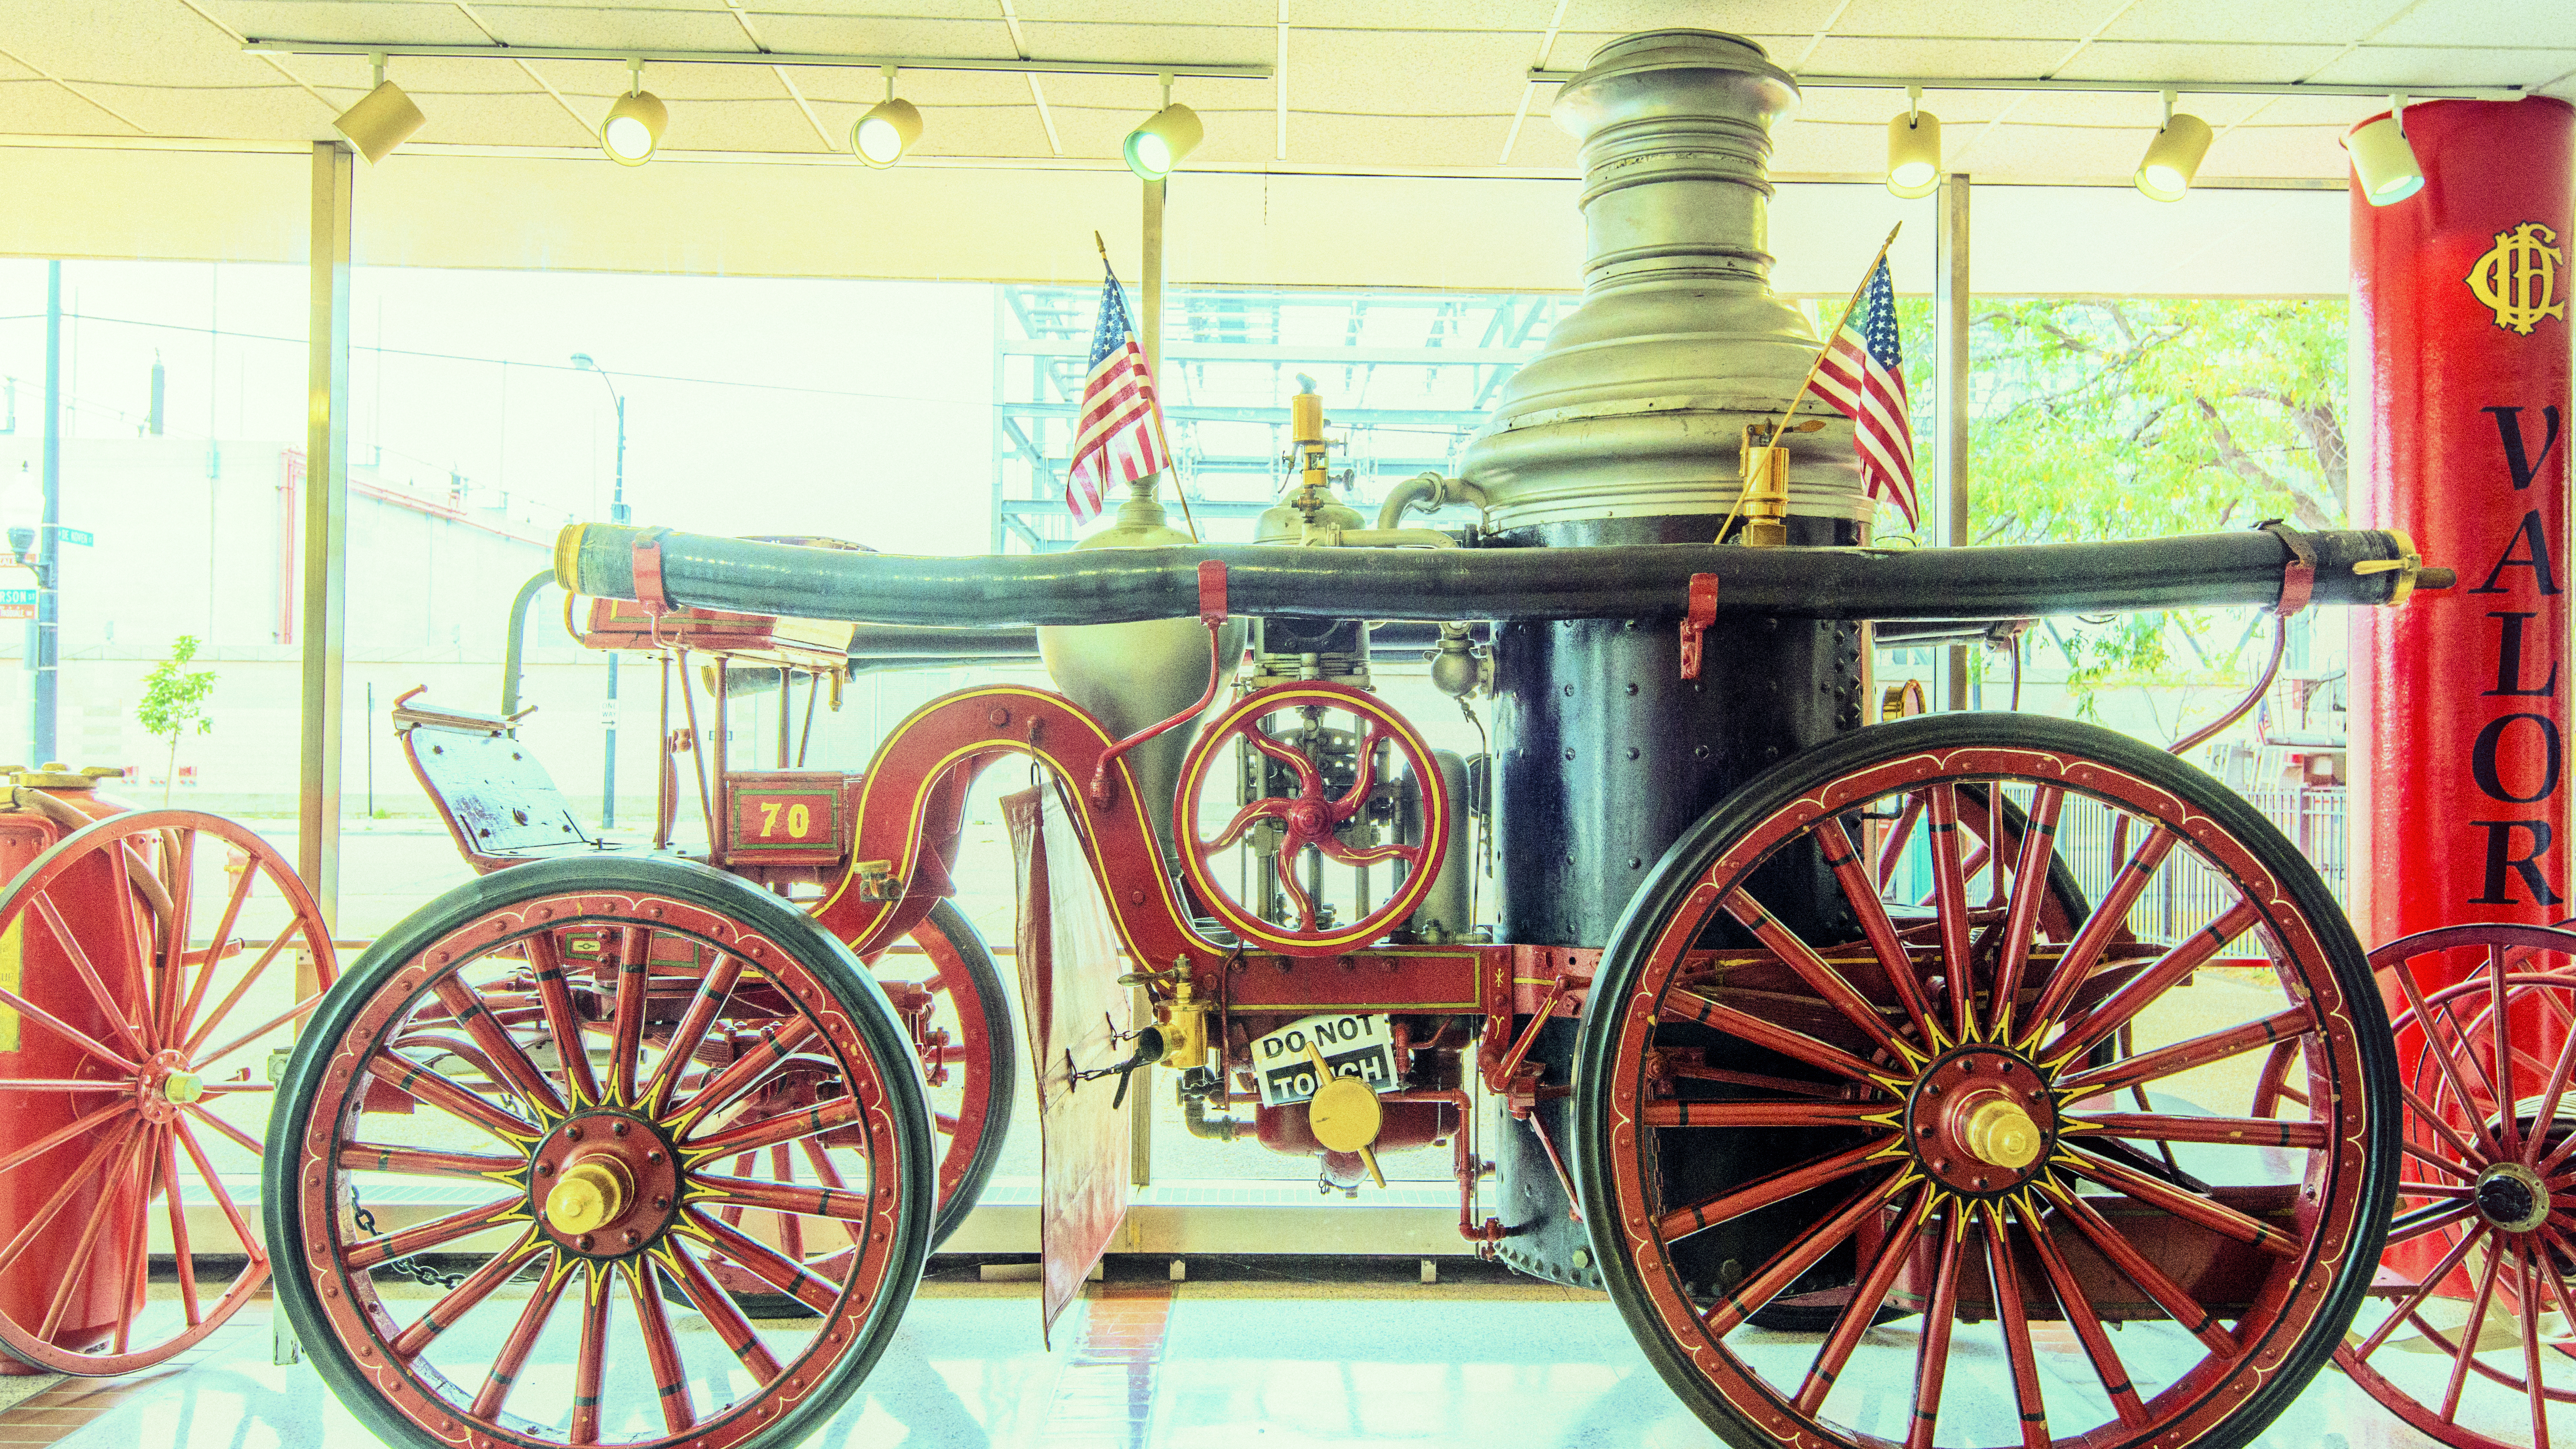 A mid-1800s steam-powered fire truck is on display at the Chicago Fire Academy. (Jason Marck/WBEZ)